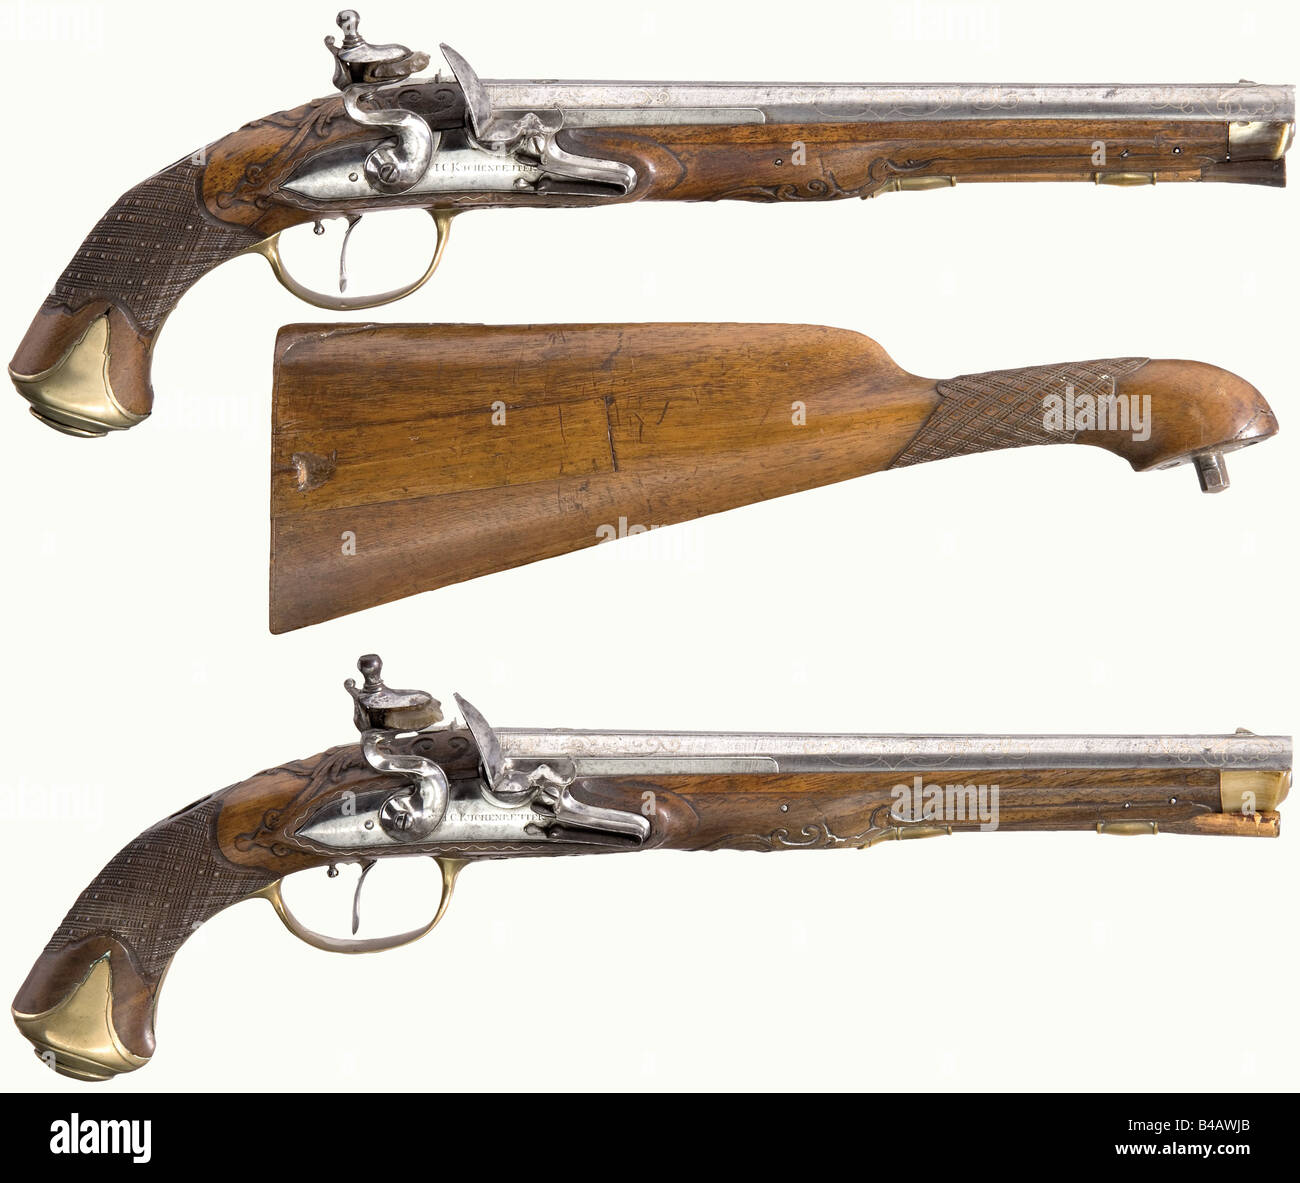 A pair of flintlock pistols with detachable shoulder stock, Johann Christoph Kuchenreuter, Steinweg near Regensburg, - Stock Image